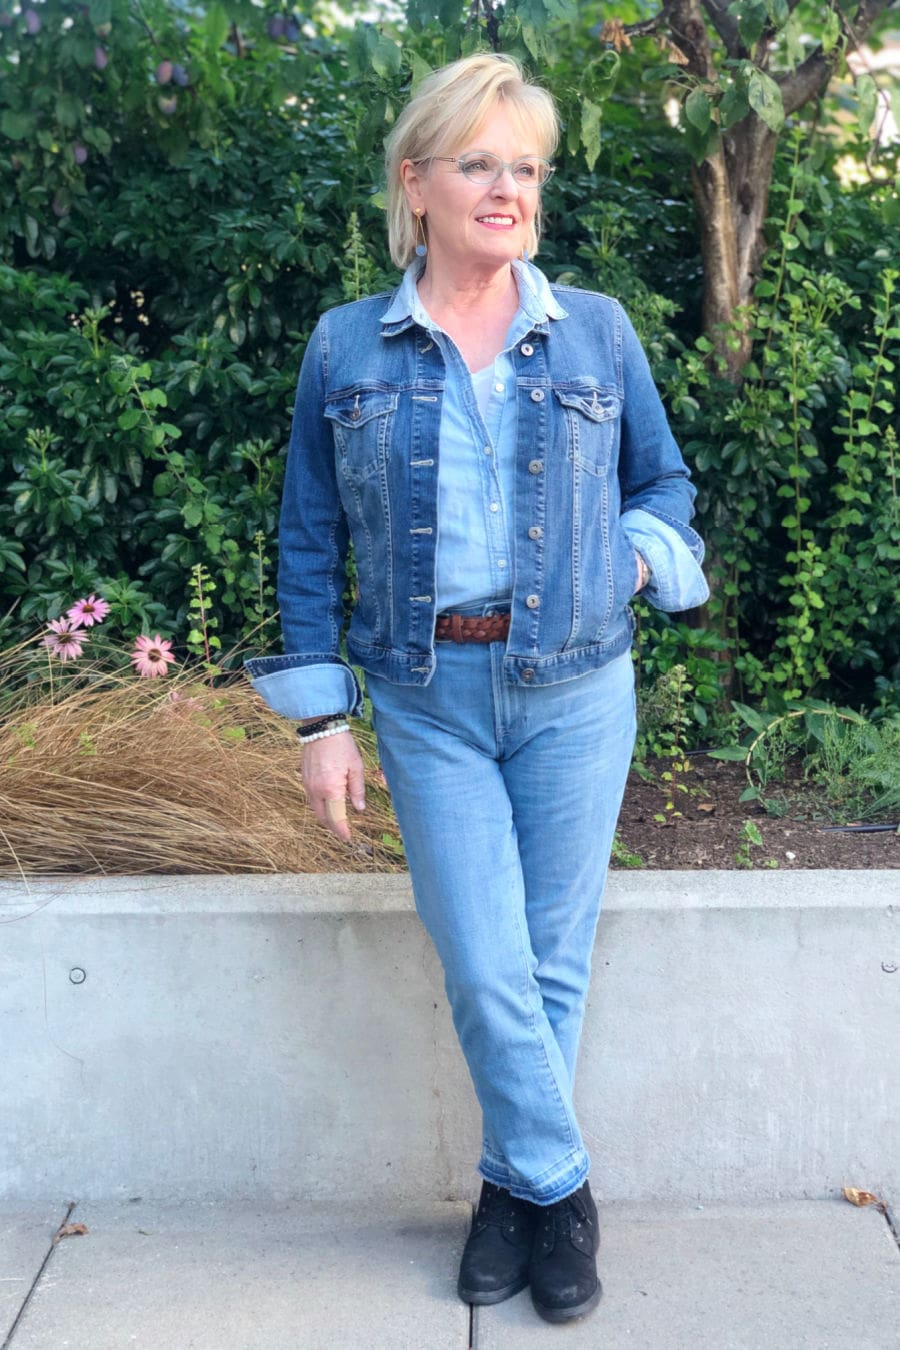 Fashion blogger A Well Styled Life wearing Canadian tuxedo from Talbots and Nordstrom